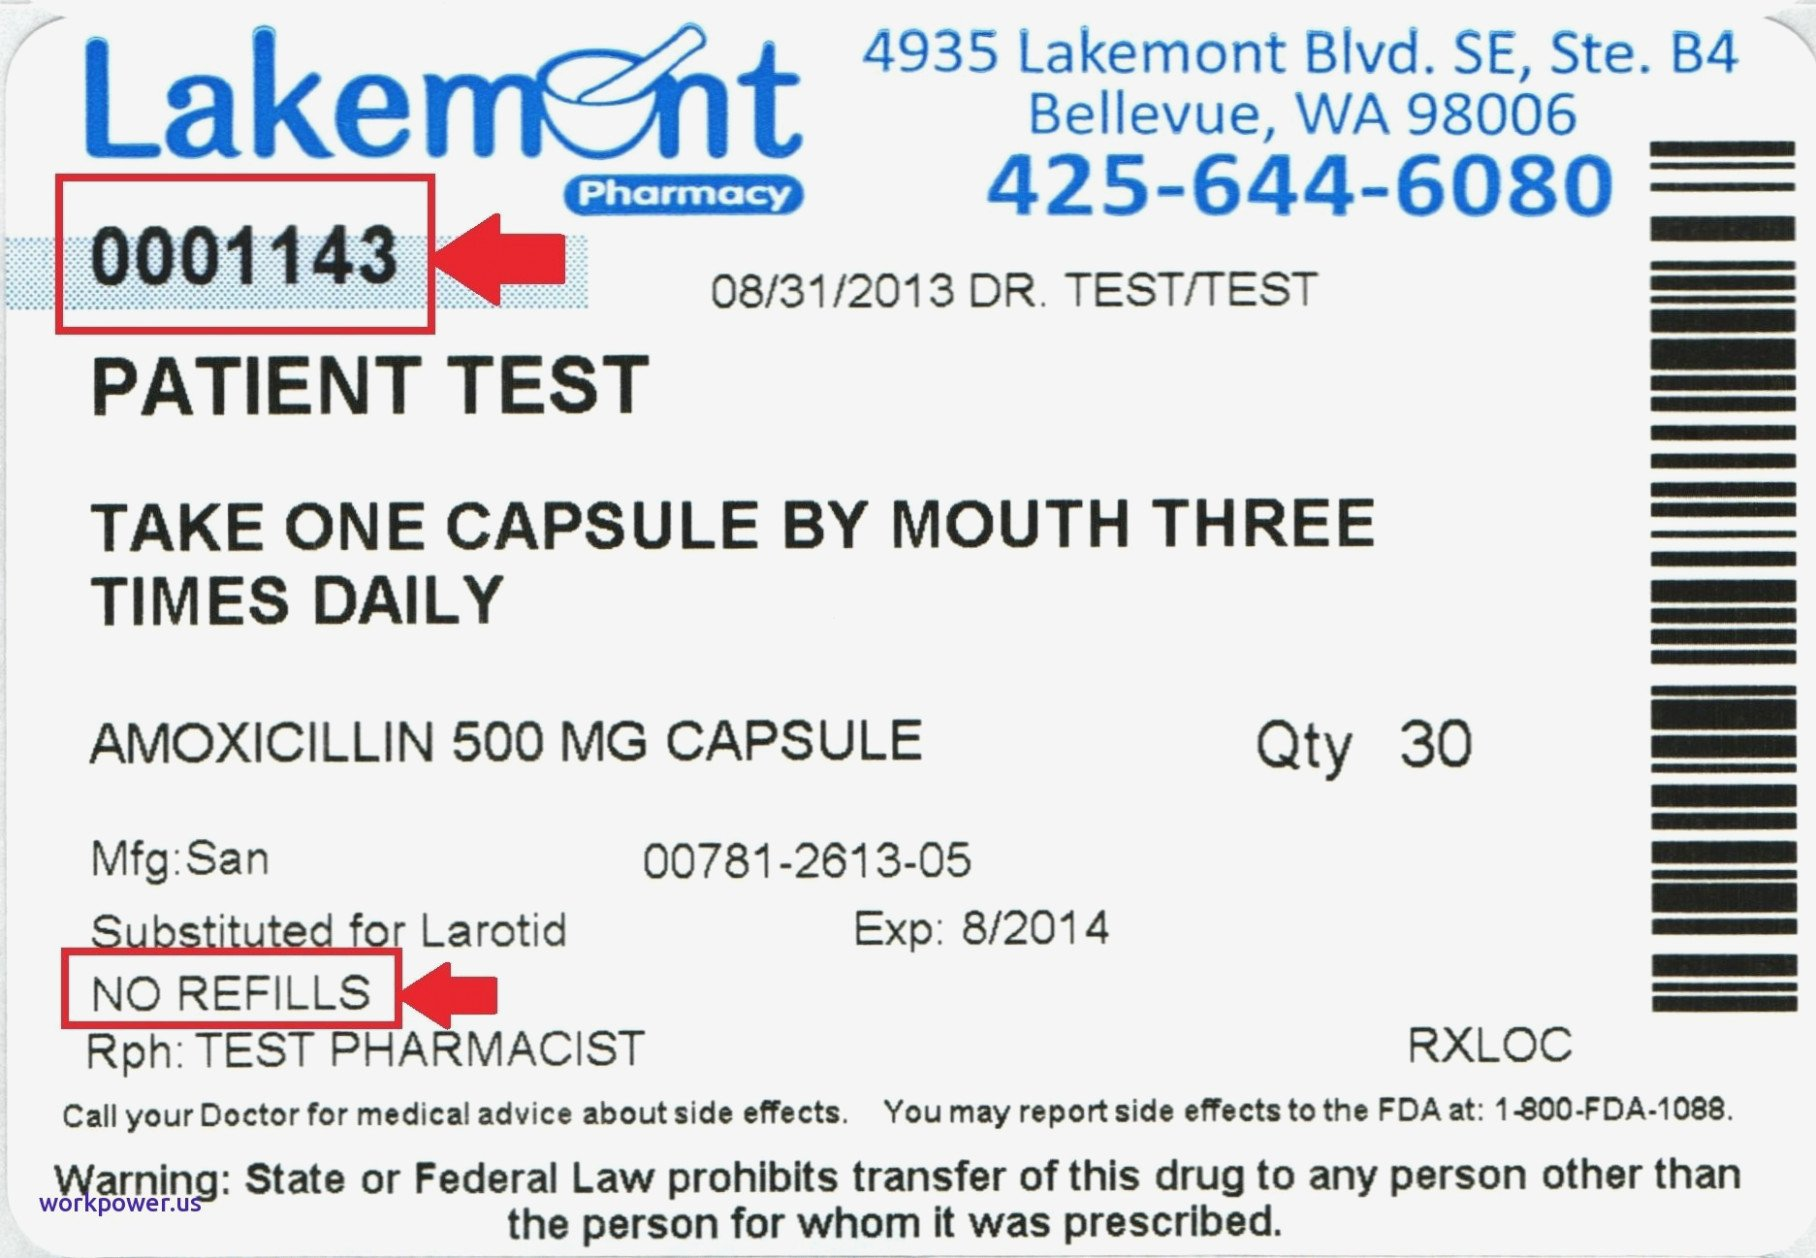 Prescription Bottle Label Generator 15 Things to Know About Fake